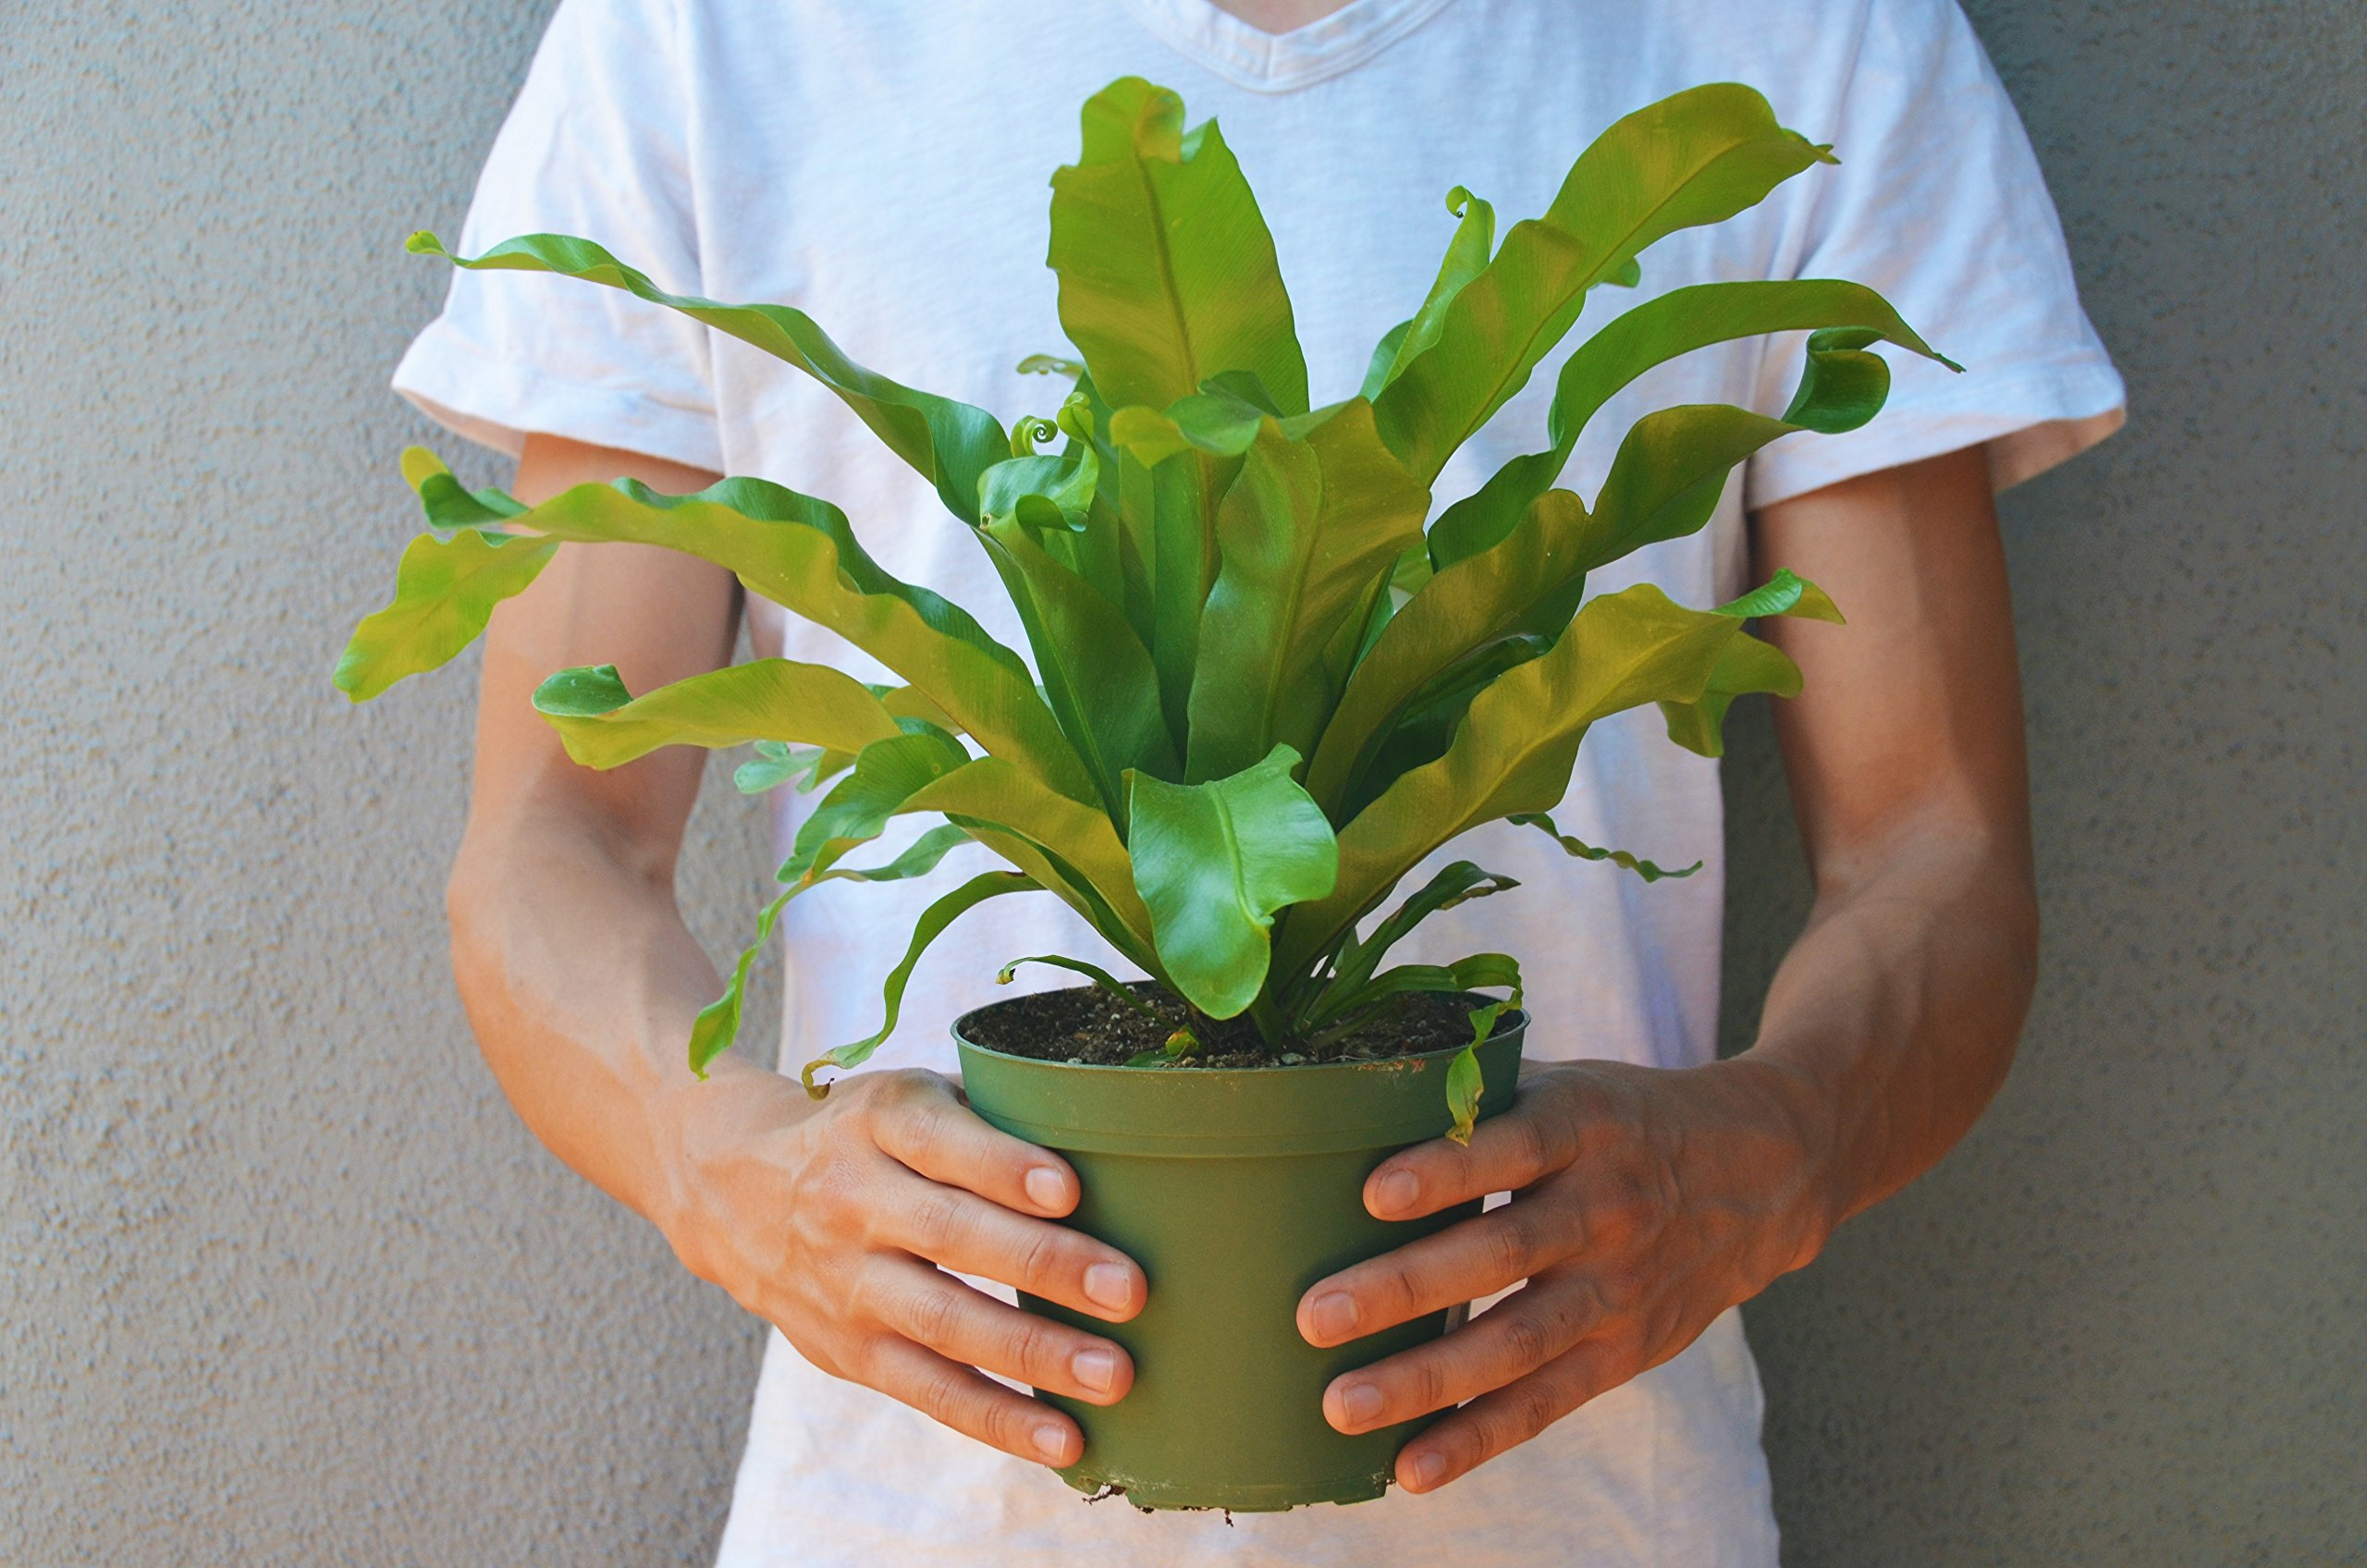 Bird's Nest Fern (12'' - 16'' Tall) - Live Plant - FREE Care Guide - 6'' Pot - Low Light House Plant by House Plant Shop